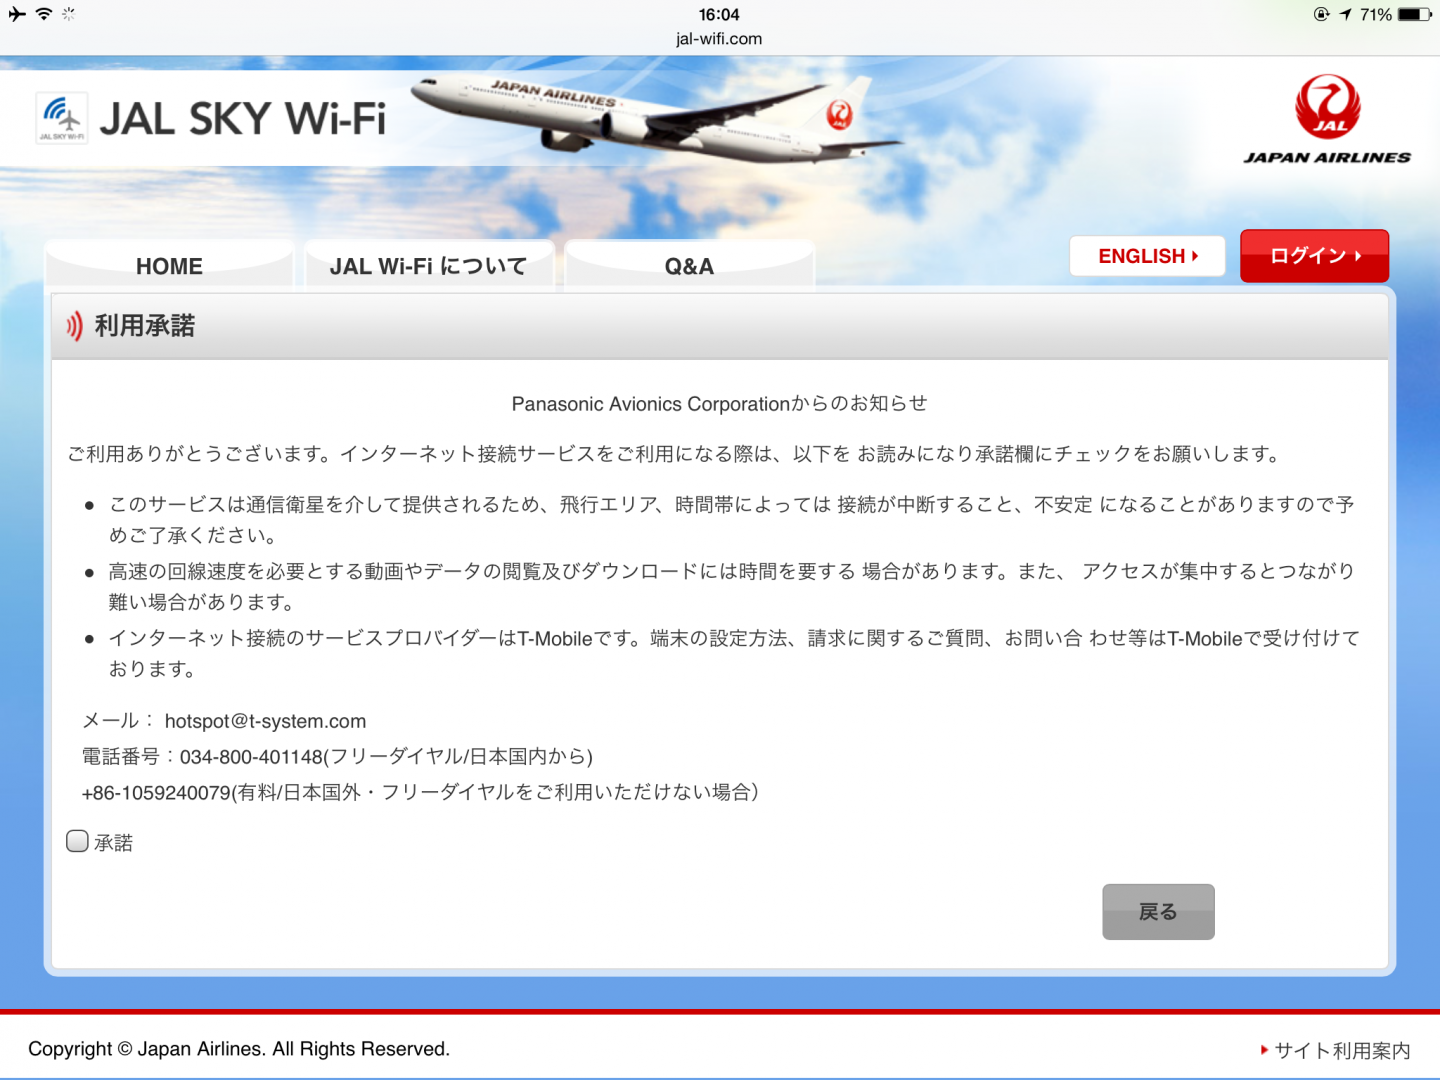 used_jal-sky-wifi_los-angeles_2